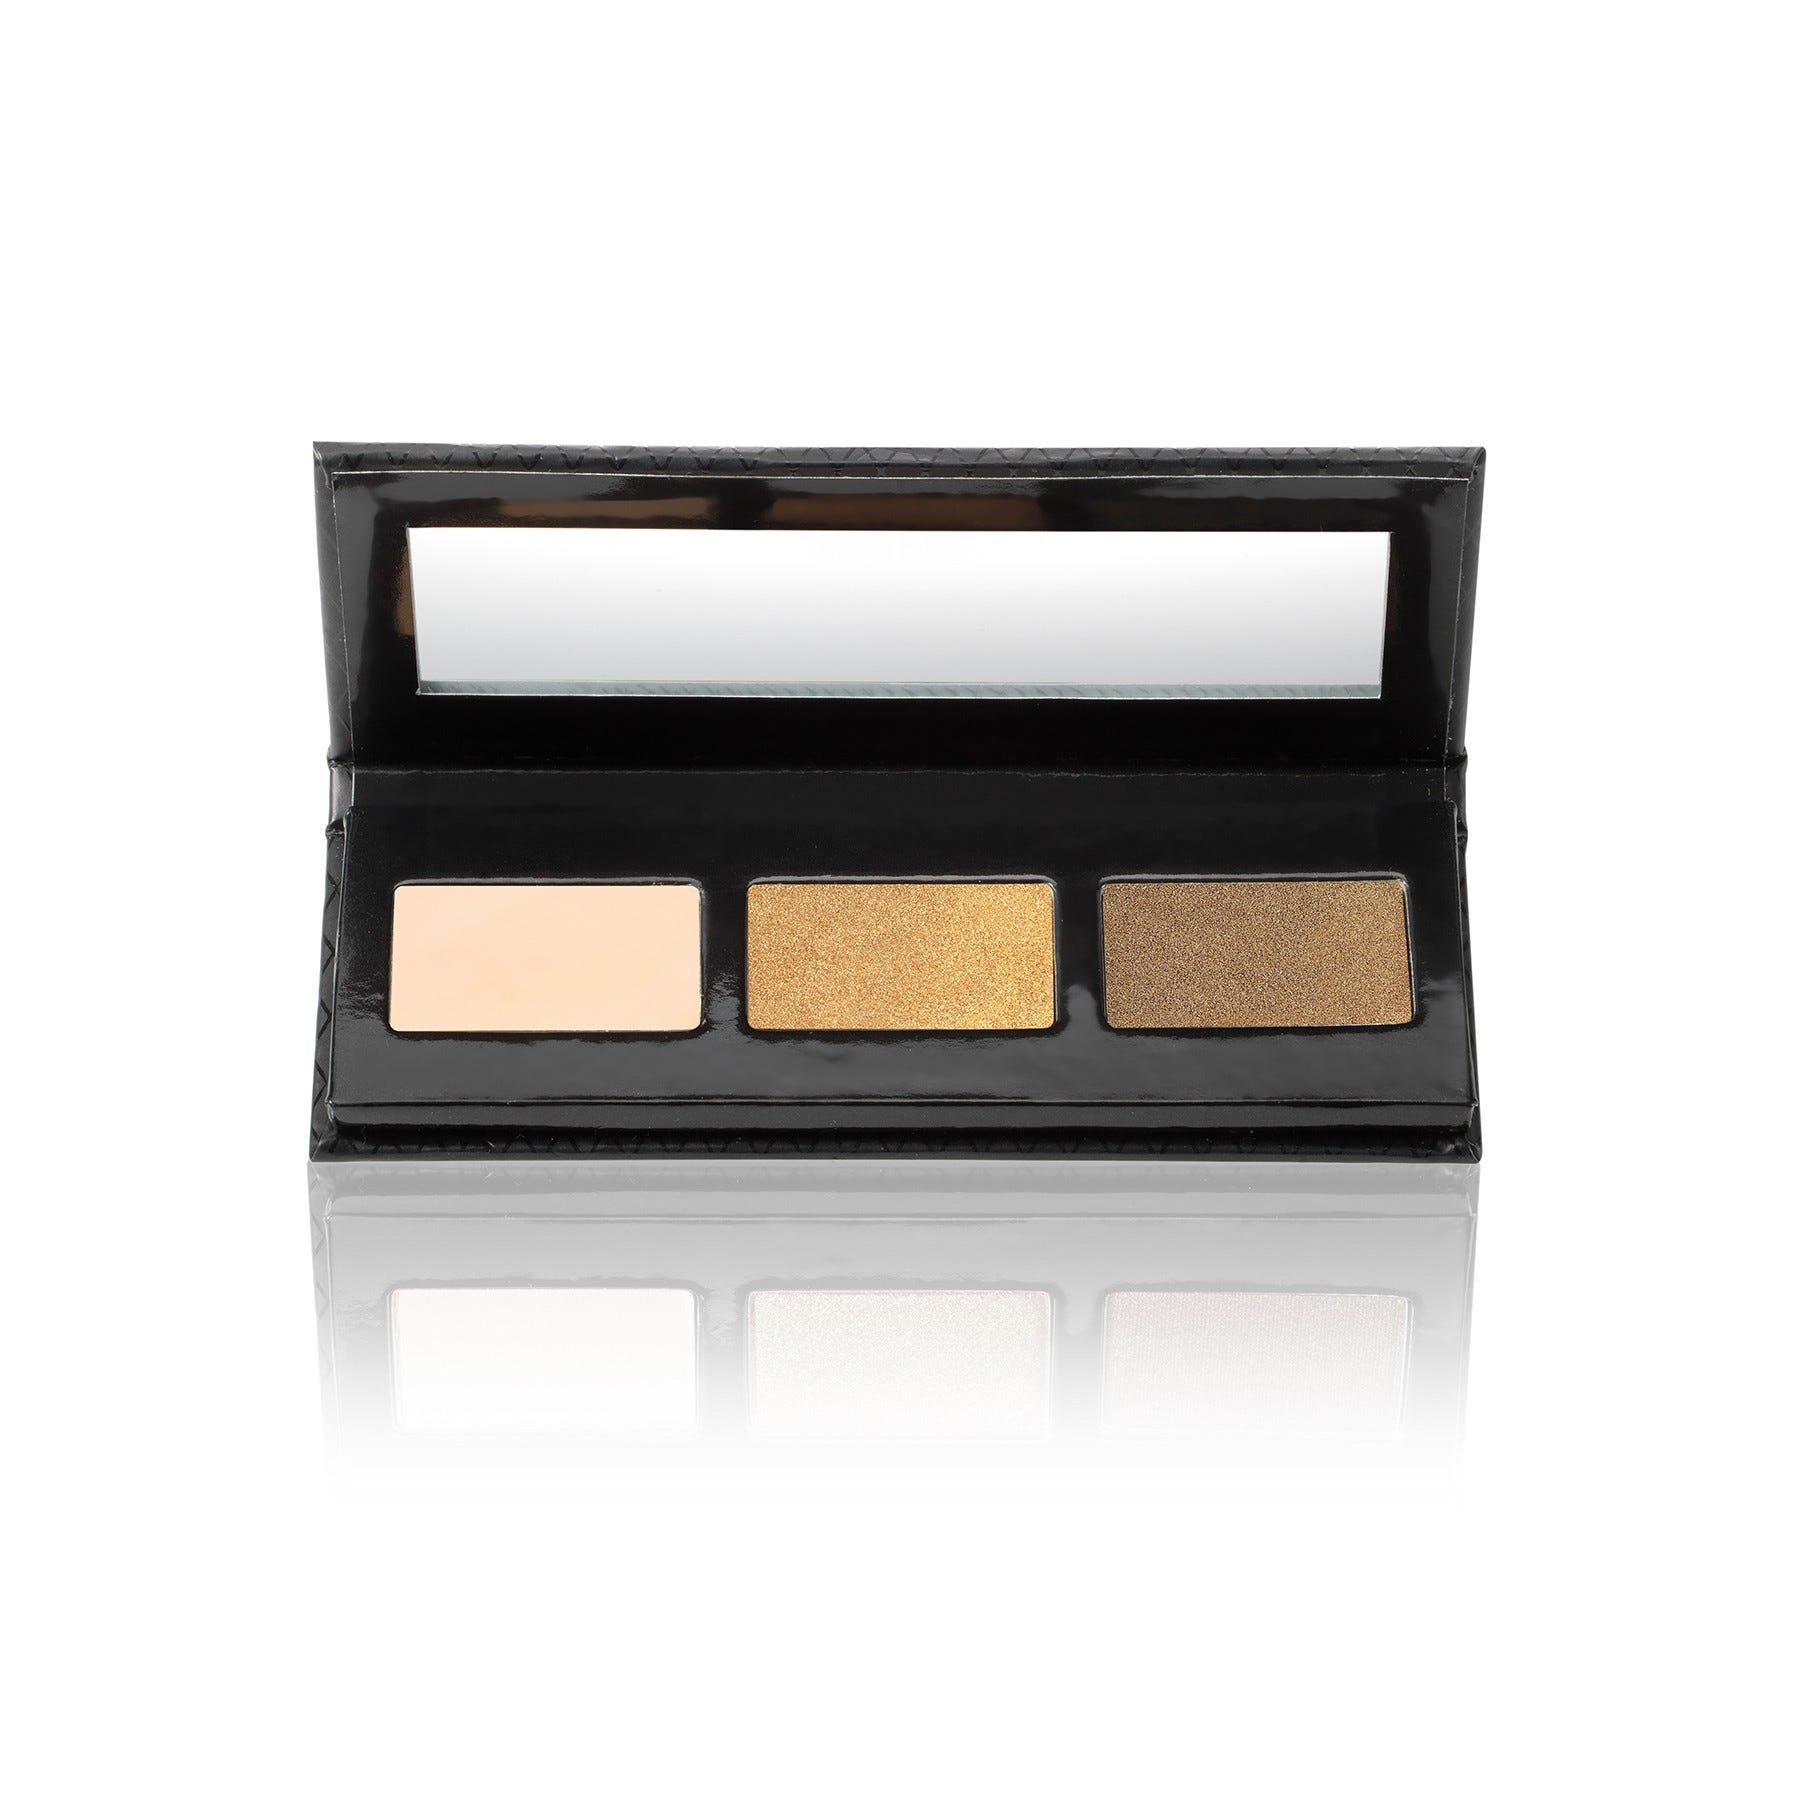 5 Eyeshadow Colors That Will Make Blue Eyes Sparkle Even Brighter forecasting